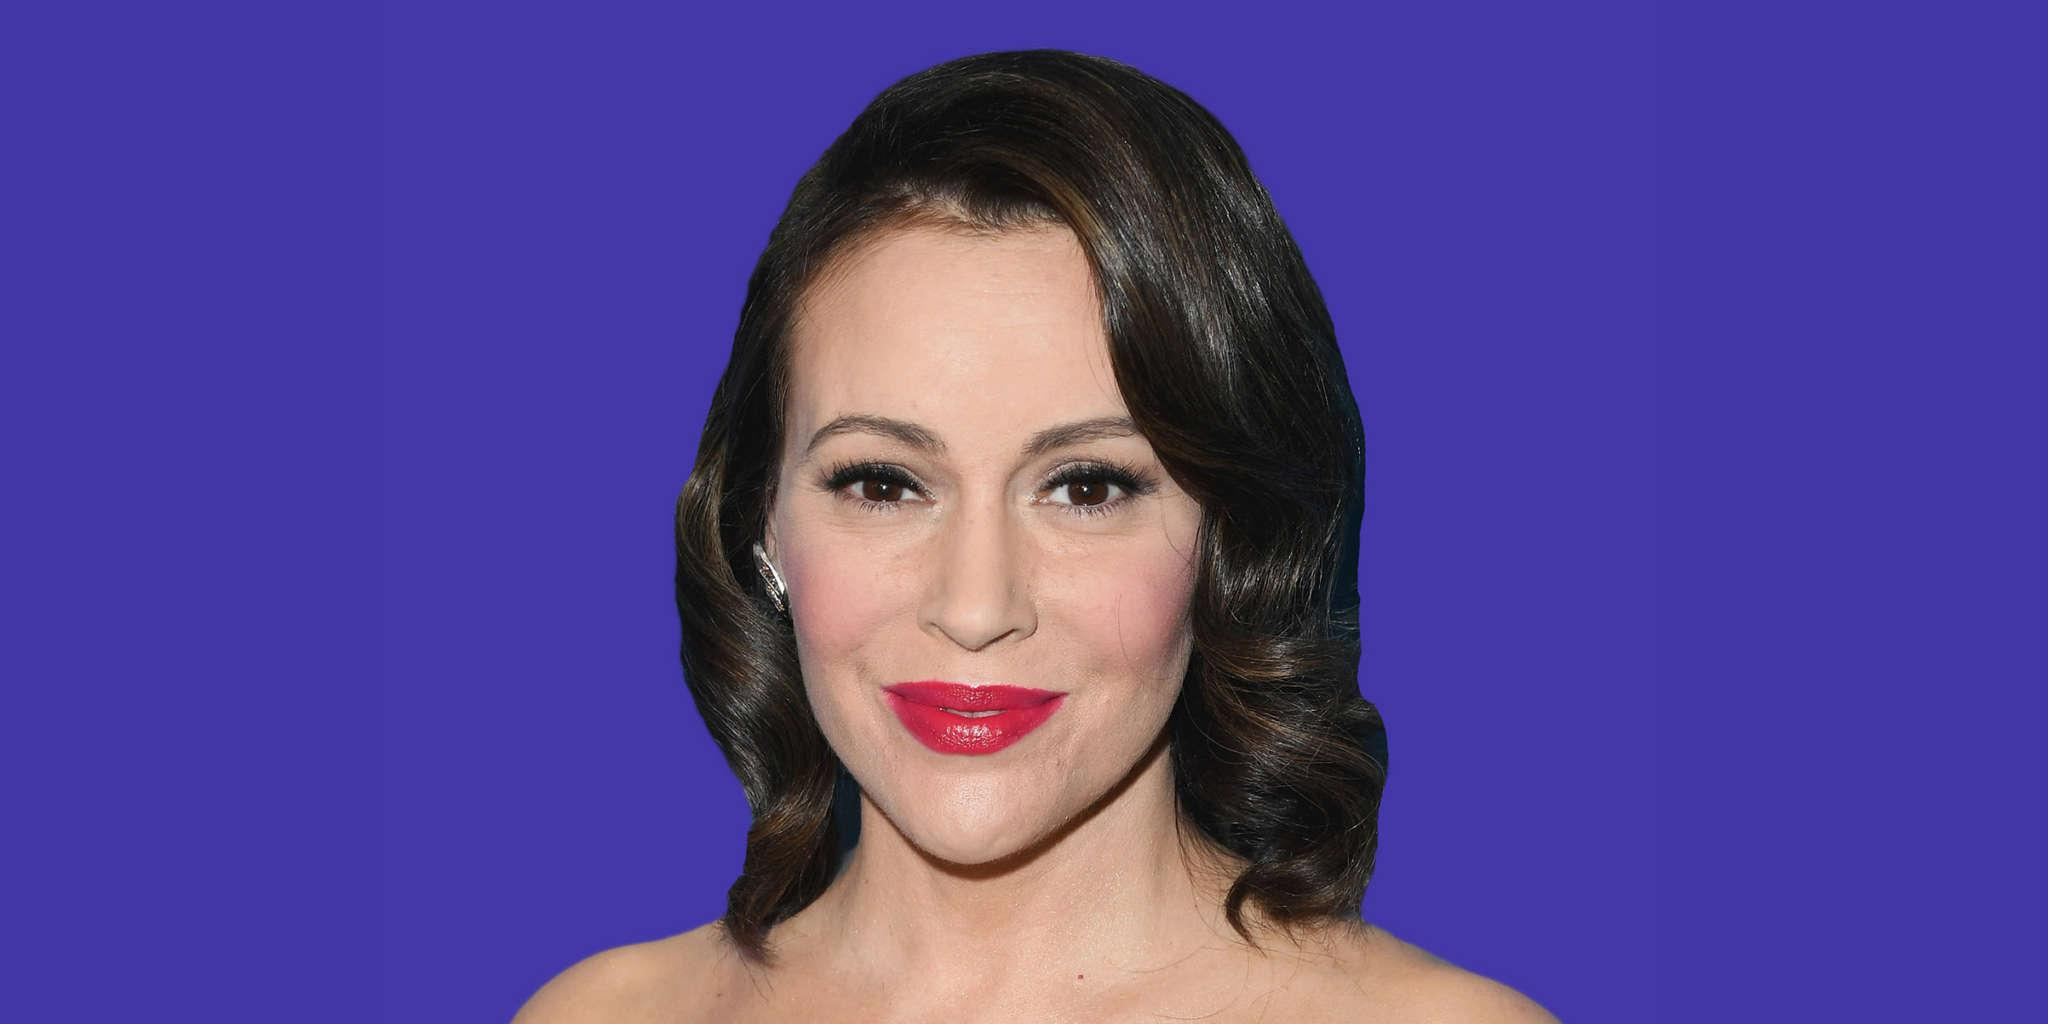 Alyssa Milano Discusses Her New Book - Reveals Its Goal Is To Inspire 'Hope For a Brighter Tomorrow'